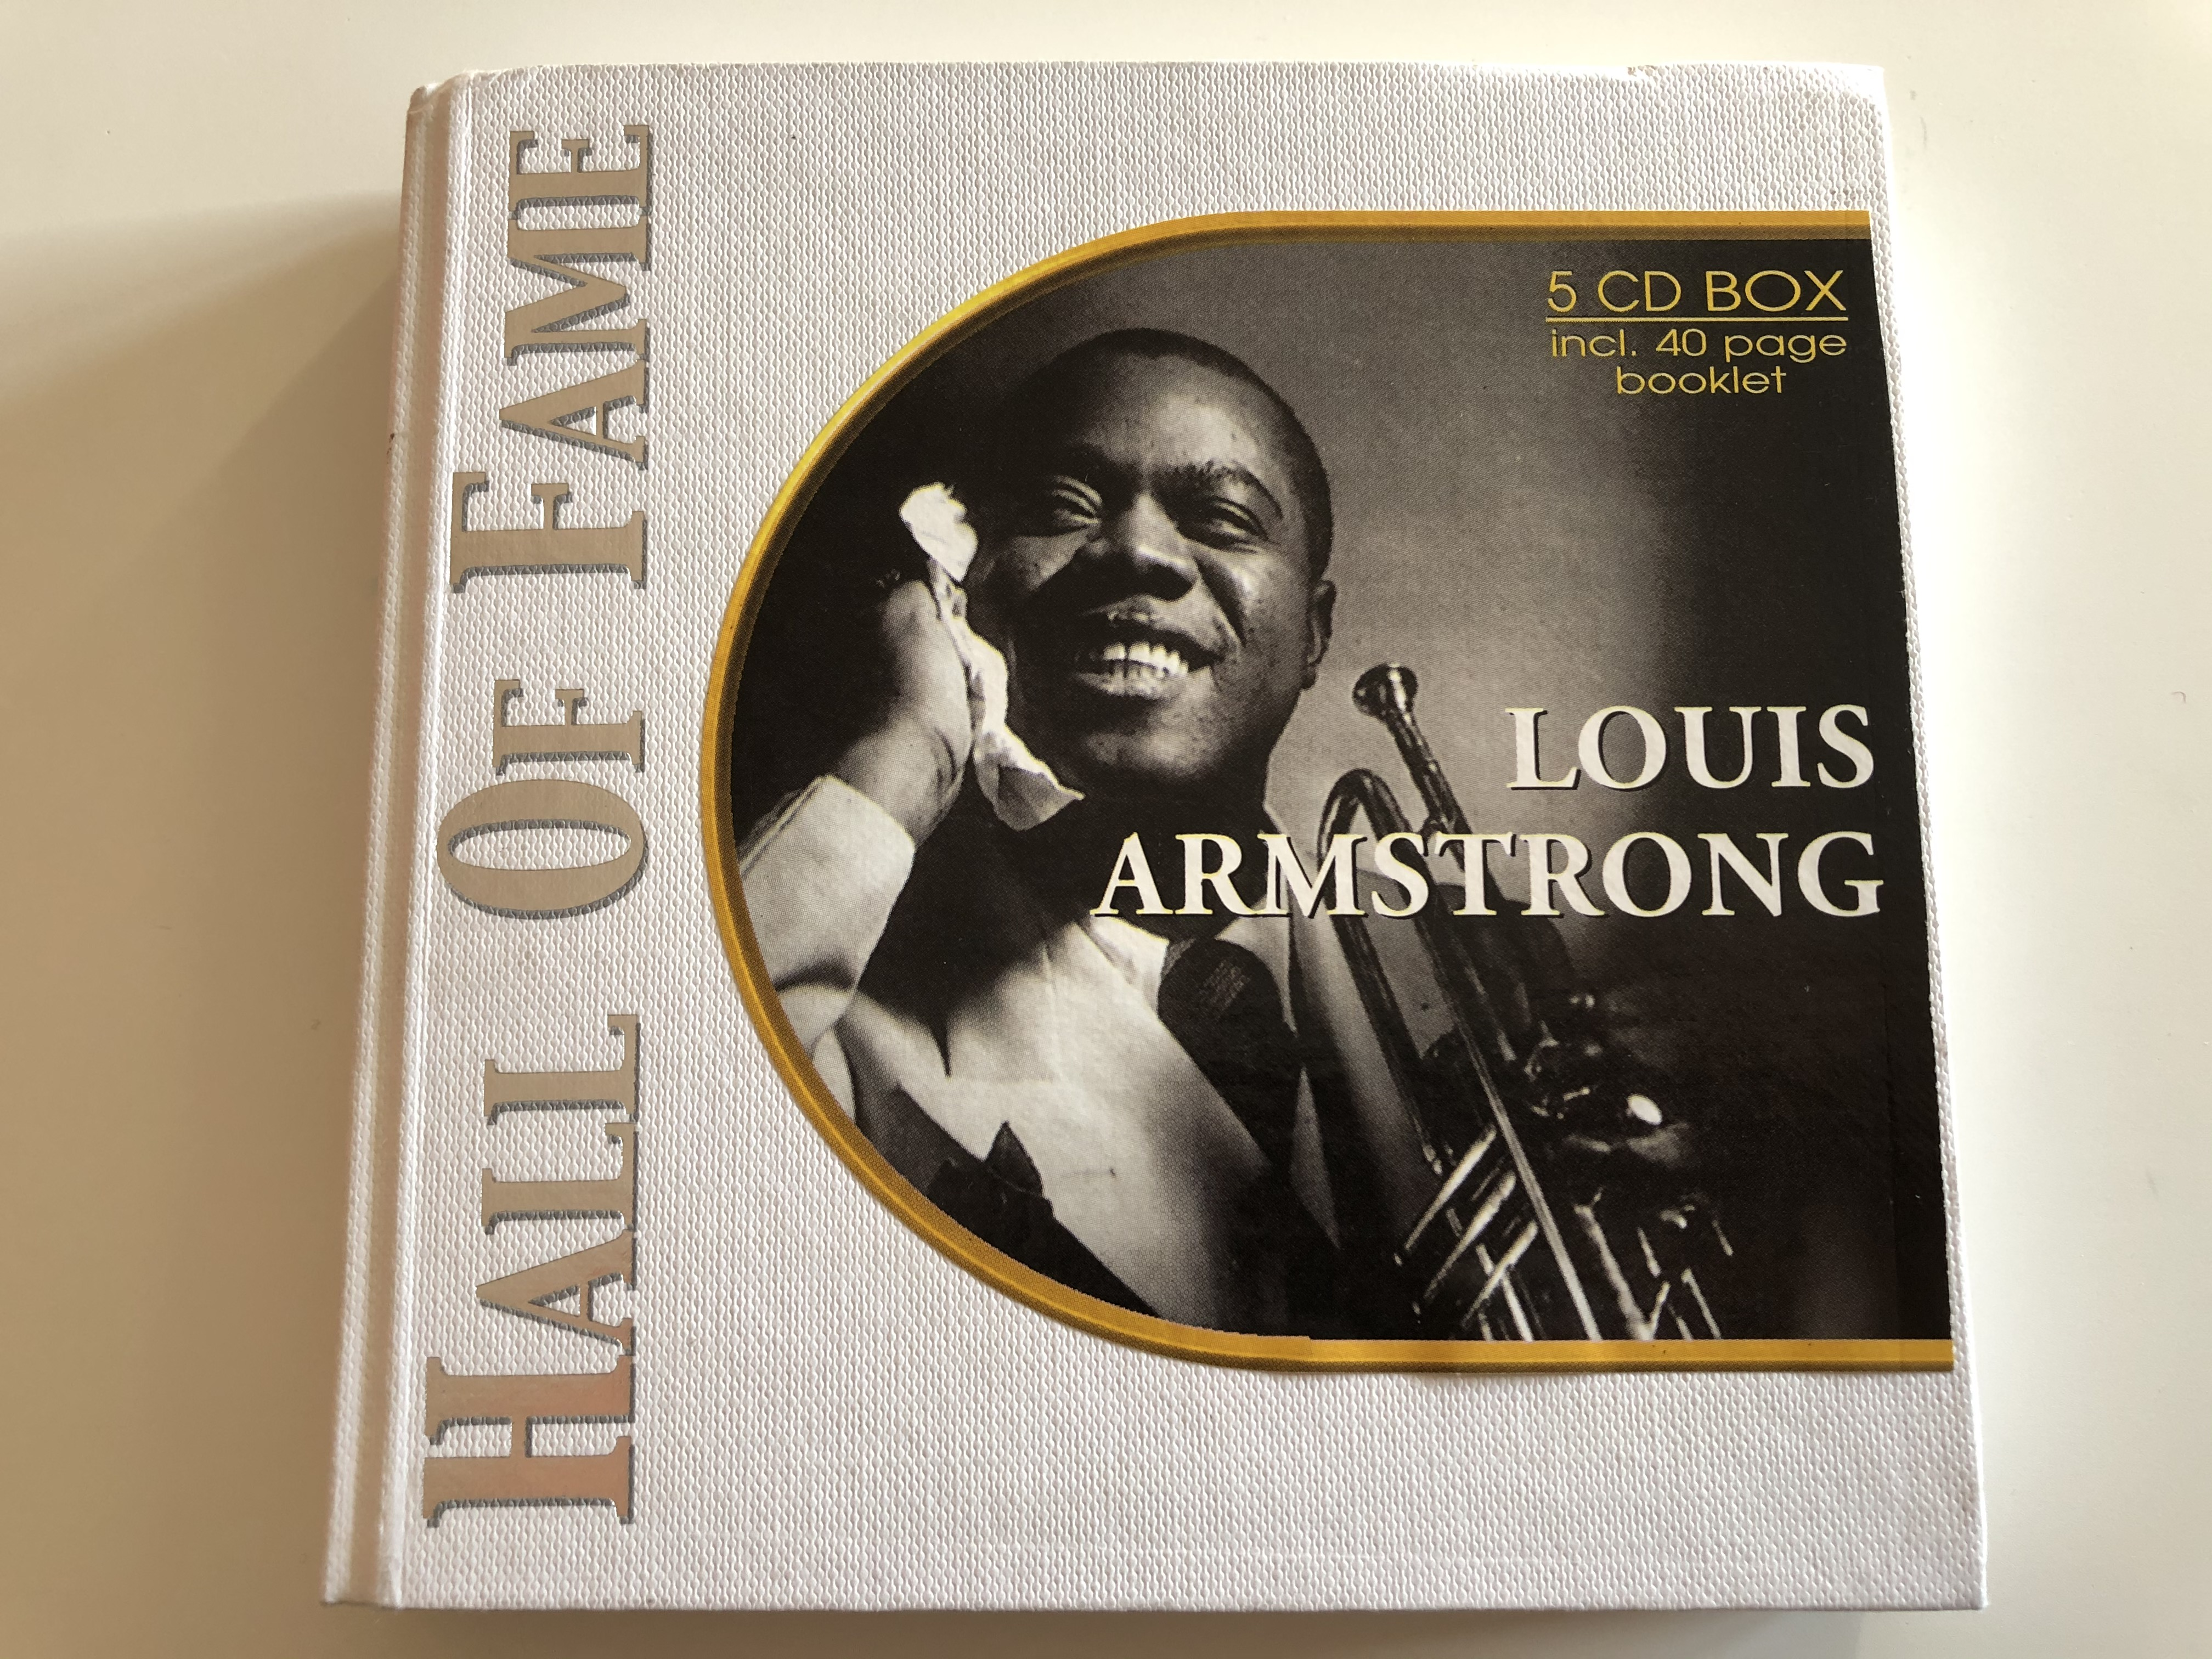 louis-armstrong-hall-of-fame-past-perfect-jazz-line-5x-audio-cd-2002-220179-1-.jpg